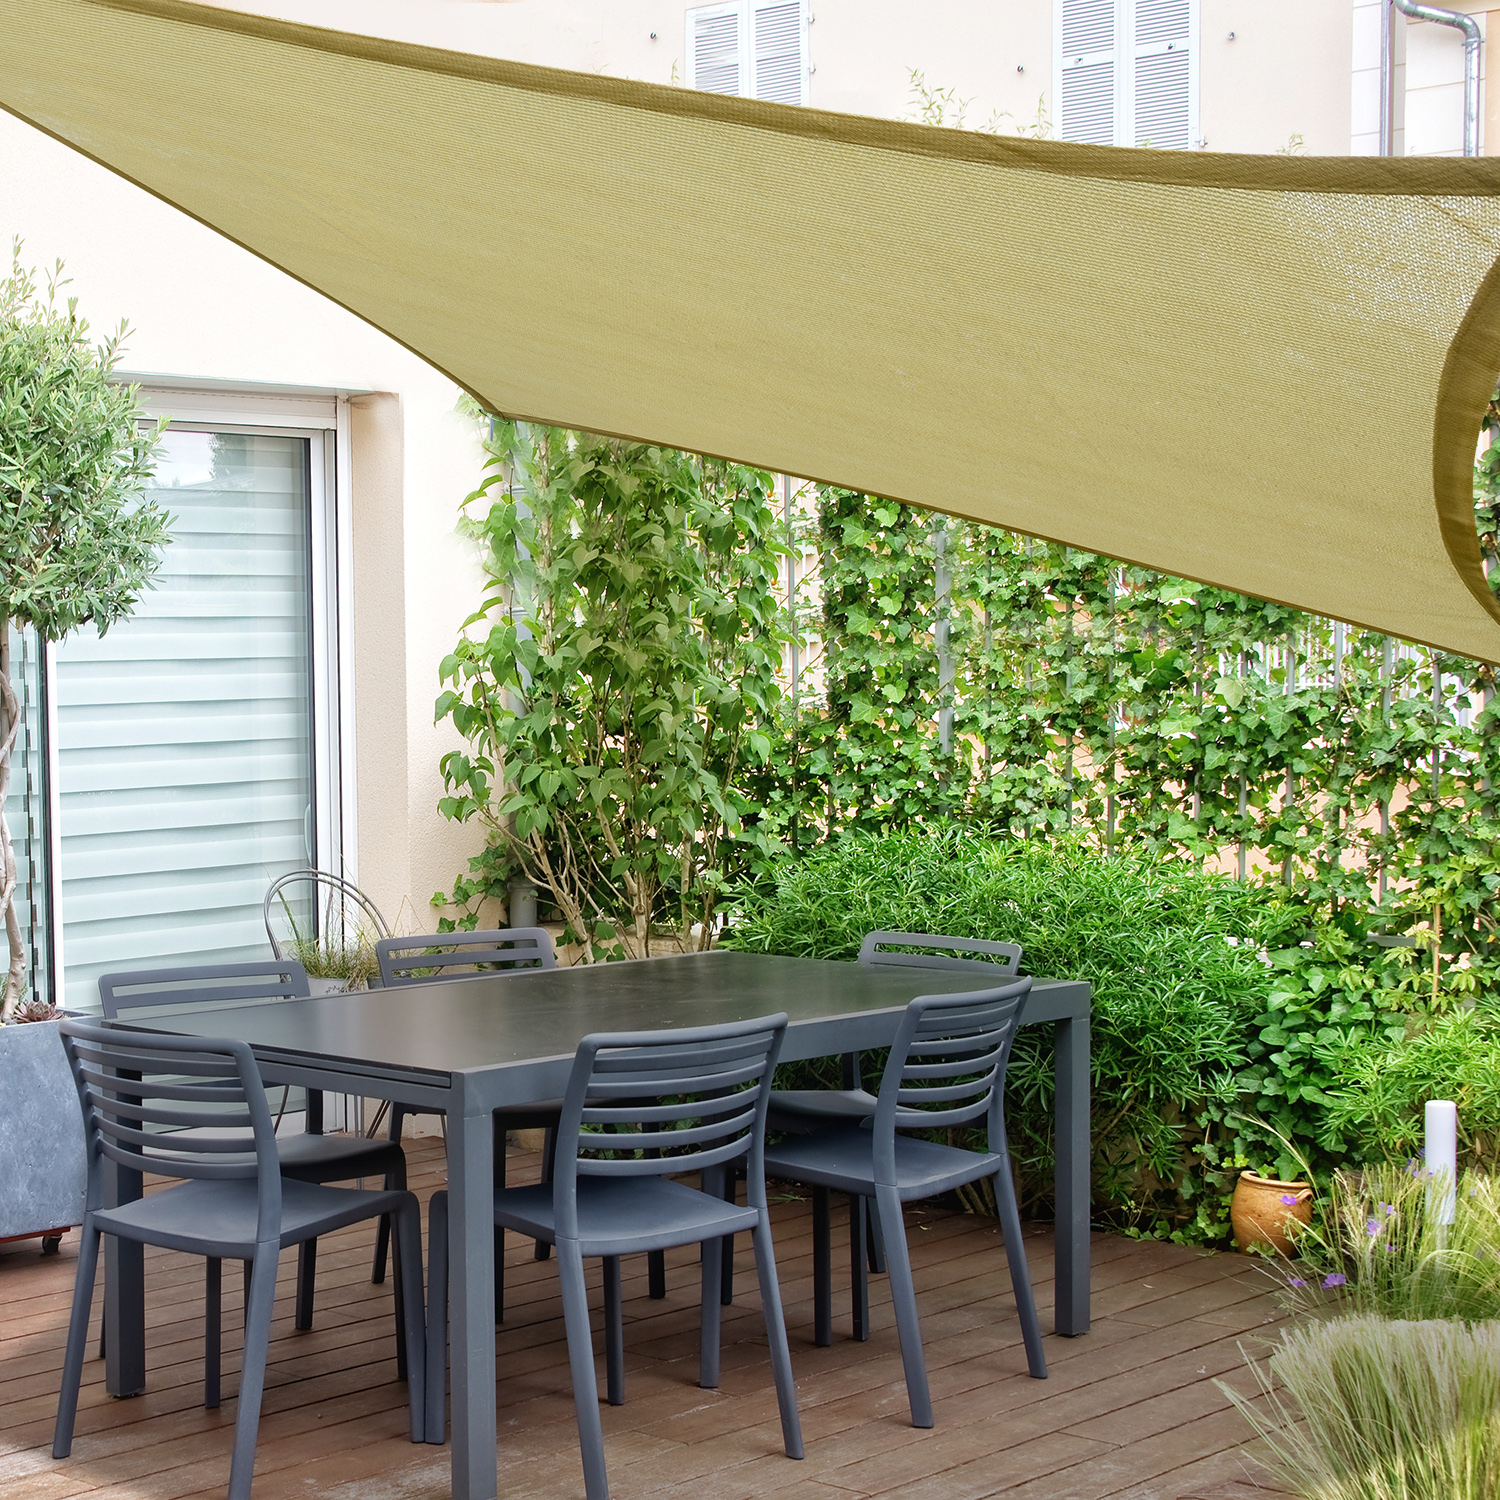 Sun-Shade-Sail-UV-Top-Cover-Outdoor-Canopy-Patio-Triangle-Square-Rectangle-w-Bag thumbnail 9